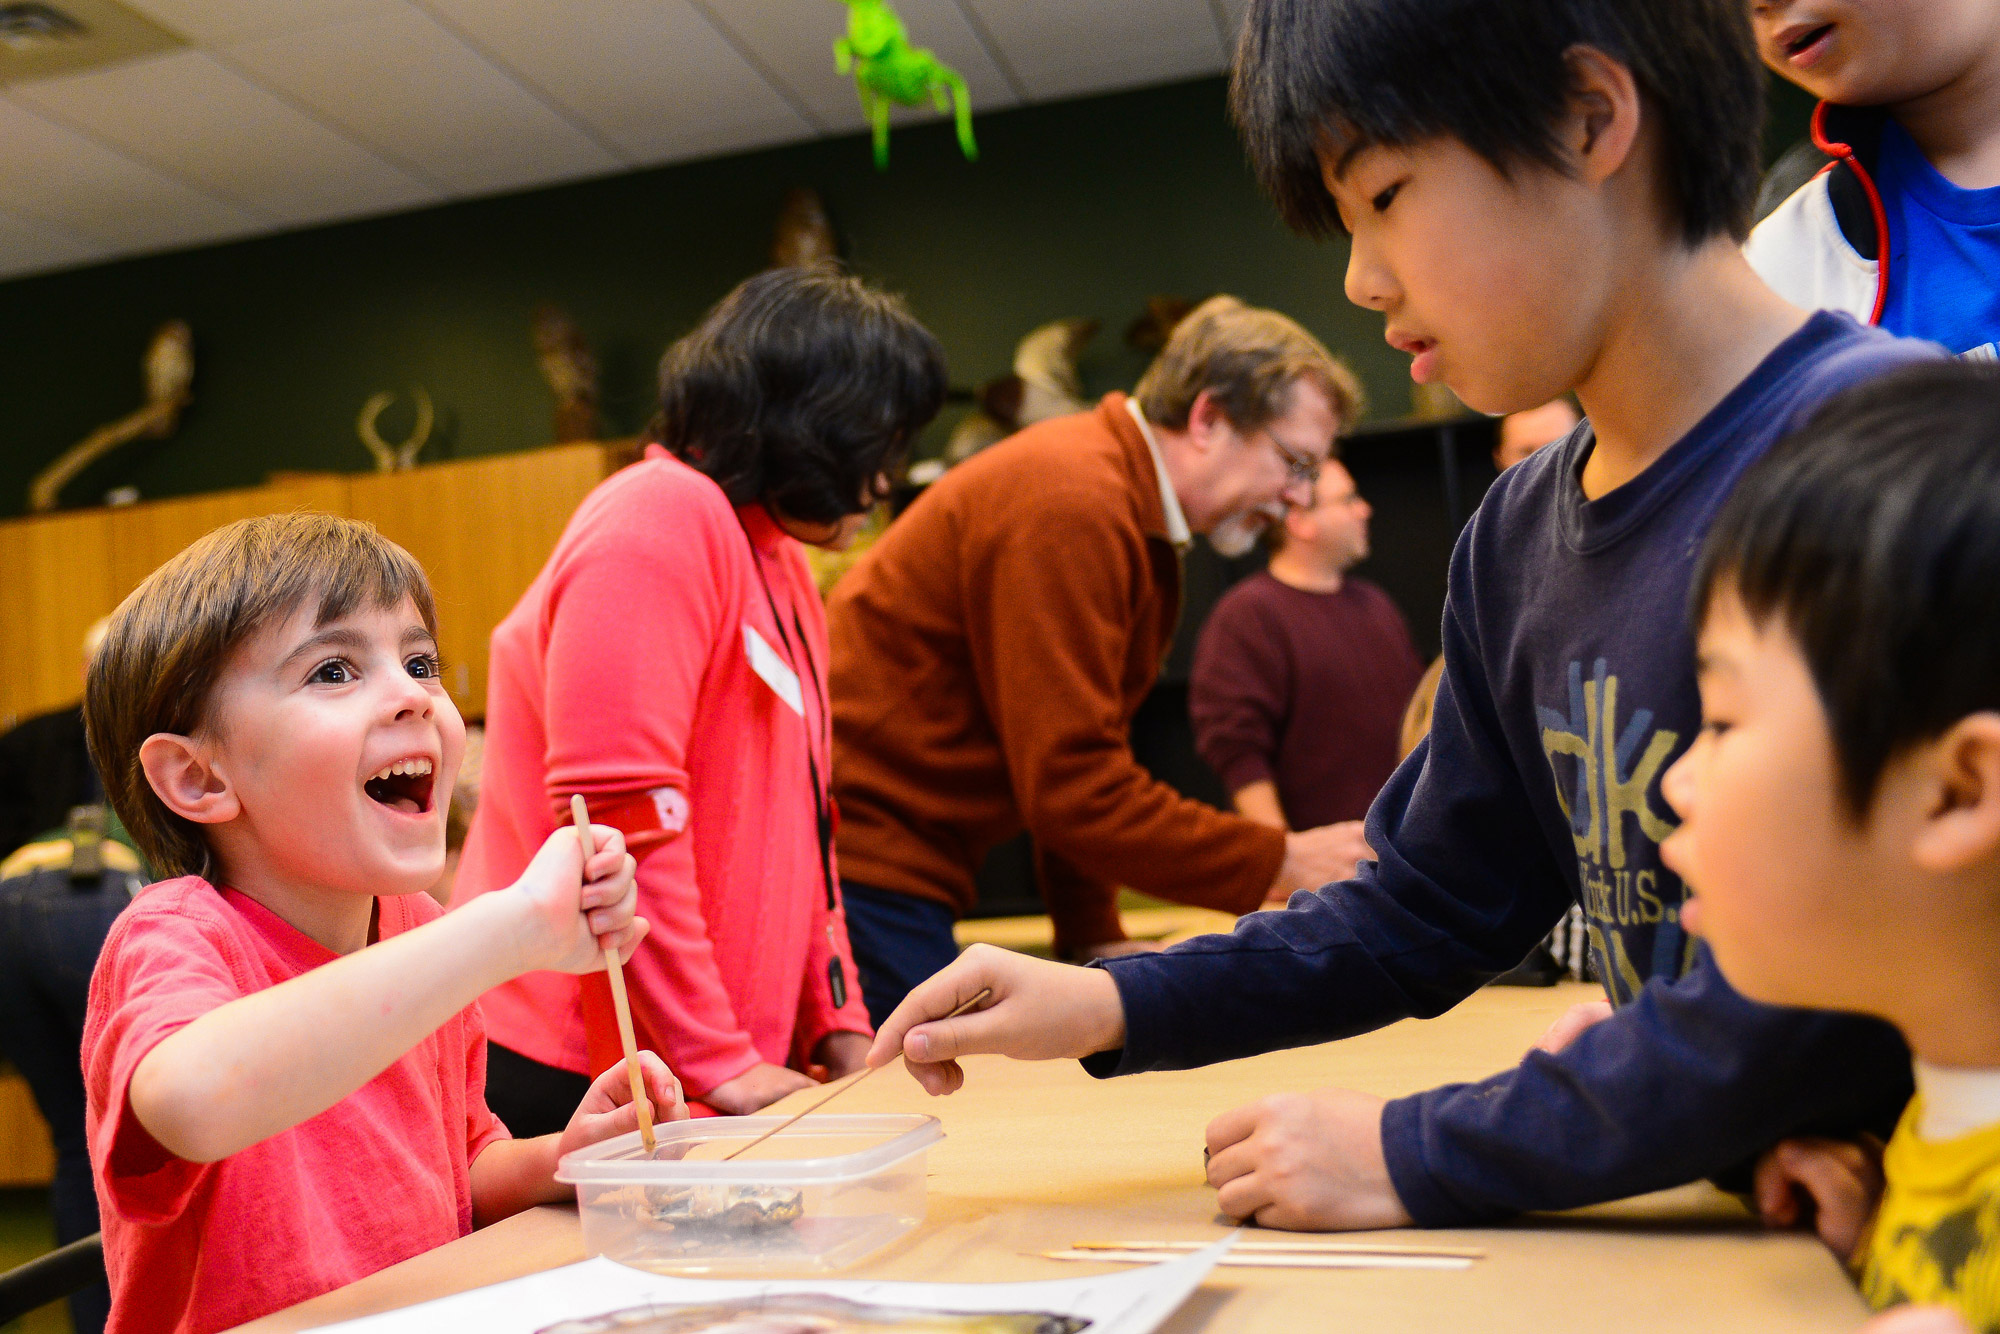 Dyson Kuhns, left, 6, of Owen Brown smiles while dissecting an oyster with Yuto Kawabata, 9, and his brother Yuki, right, 5 of Ellicott City.